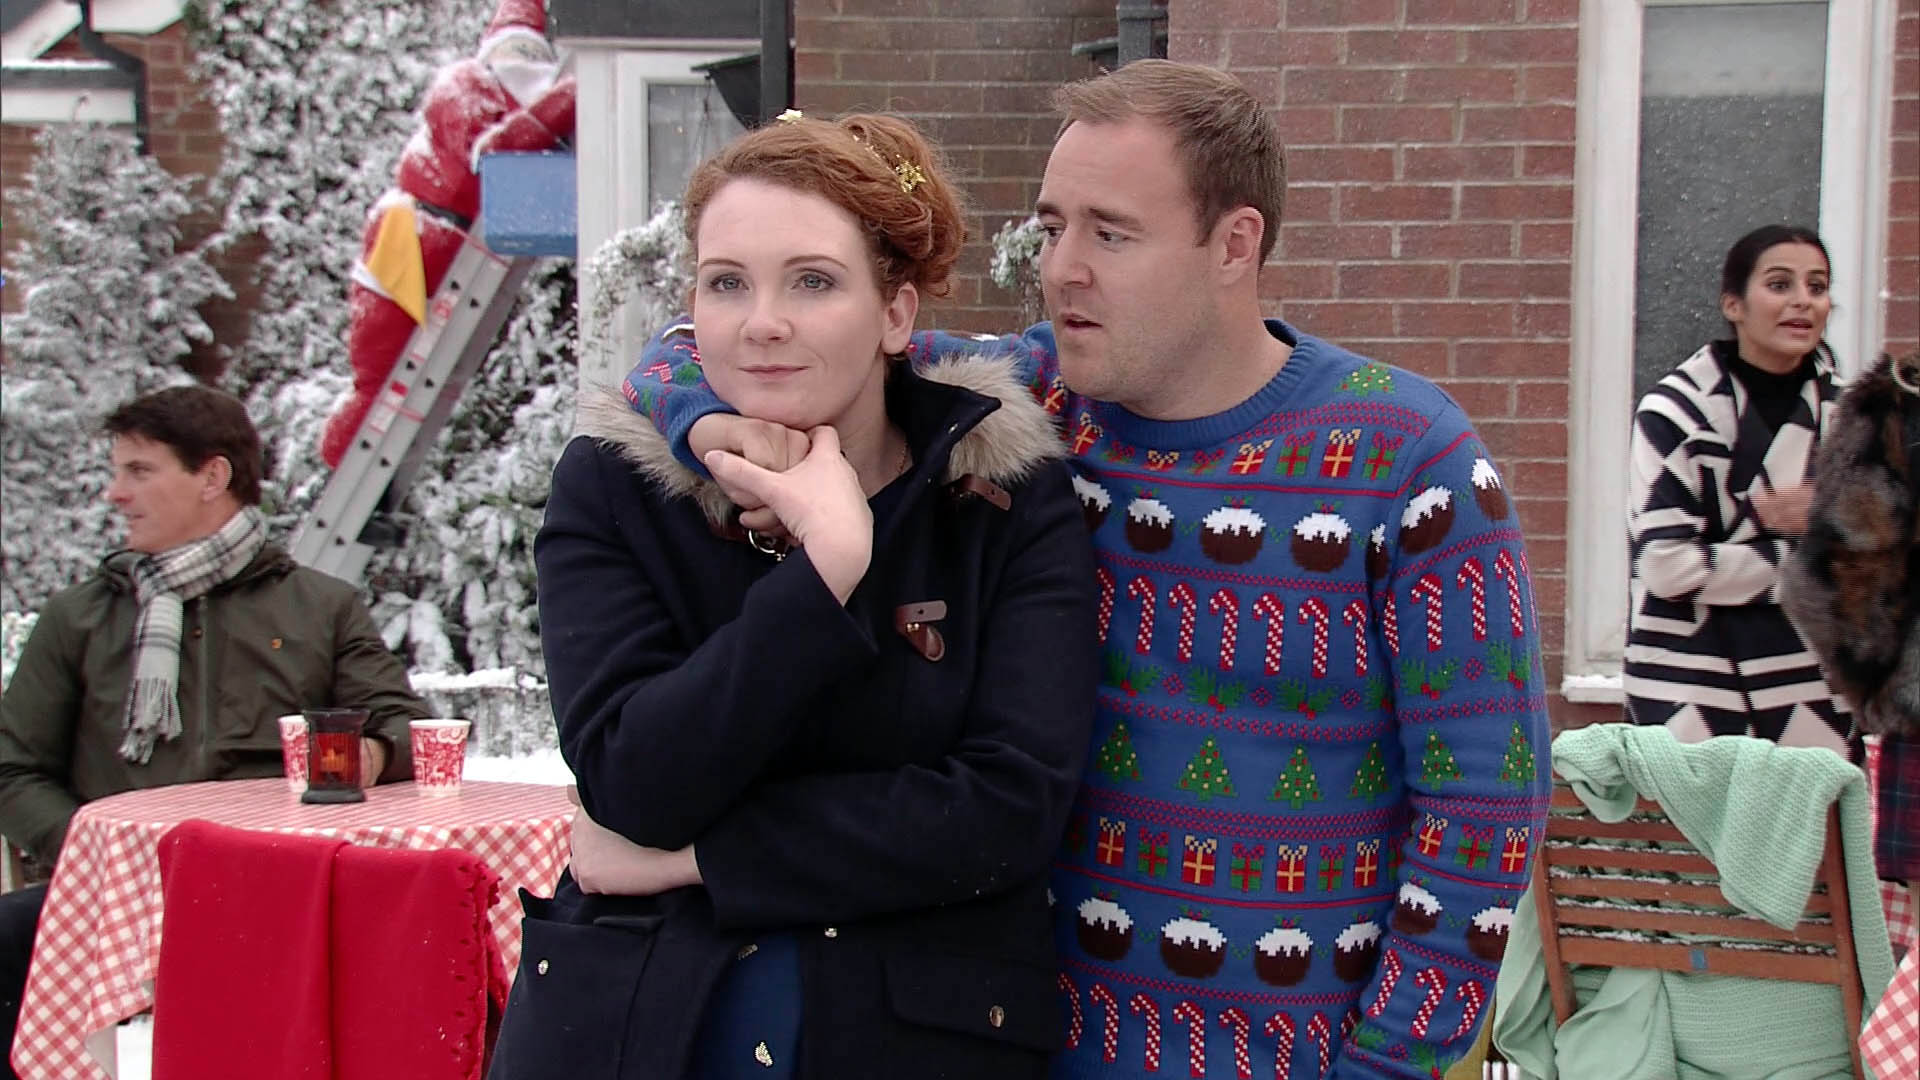 FROM ITV STRICT EMBARGO - Tuesday 15 December 2015 Coronation Street - Ep 8802 Christmas Day 2015 Tyrone Dobbs [ALAN HALSALL] and Fiz Stape [JENNIE MCALPINE] and lead the girls out on to the street to reveal Lapland, Santa pulls up. Getting down on one knee in the snow, Tyrone produces the ring and proposes to Fiz. Will Fiz accept? Picture desk contact - david.crook@itv.com This photograph is (C) ITV Plc and can only be reproduced for editorial purposes directly in connection with the programme or event mentioned above, or ITV plc. Once made available by ITV plc Picture Desk, this photograph can be reproduced once only up until the transmission [TX] date and no reproduction fee will be charged. Any subsequent usage may incur a fee. This photograph must not be manipulated [excluding basic cropping] in a manner which alters the visual appearance of the person photographed deemed detrimental or inappropriate by ITV plc Picture Desk. This photograph must not be syndicated to any other company, publication or website, or permanently archived, without the express written permission of ITV Plc Picture Desk. Full Terms and conditions are available on the website www.itvpictures.com